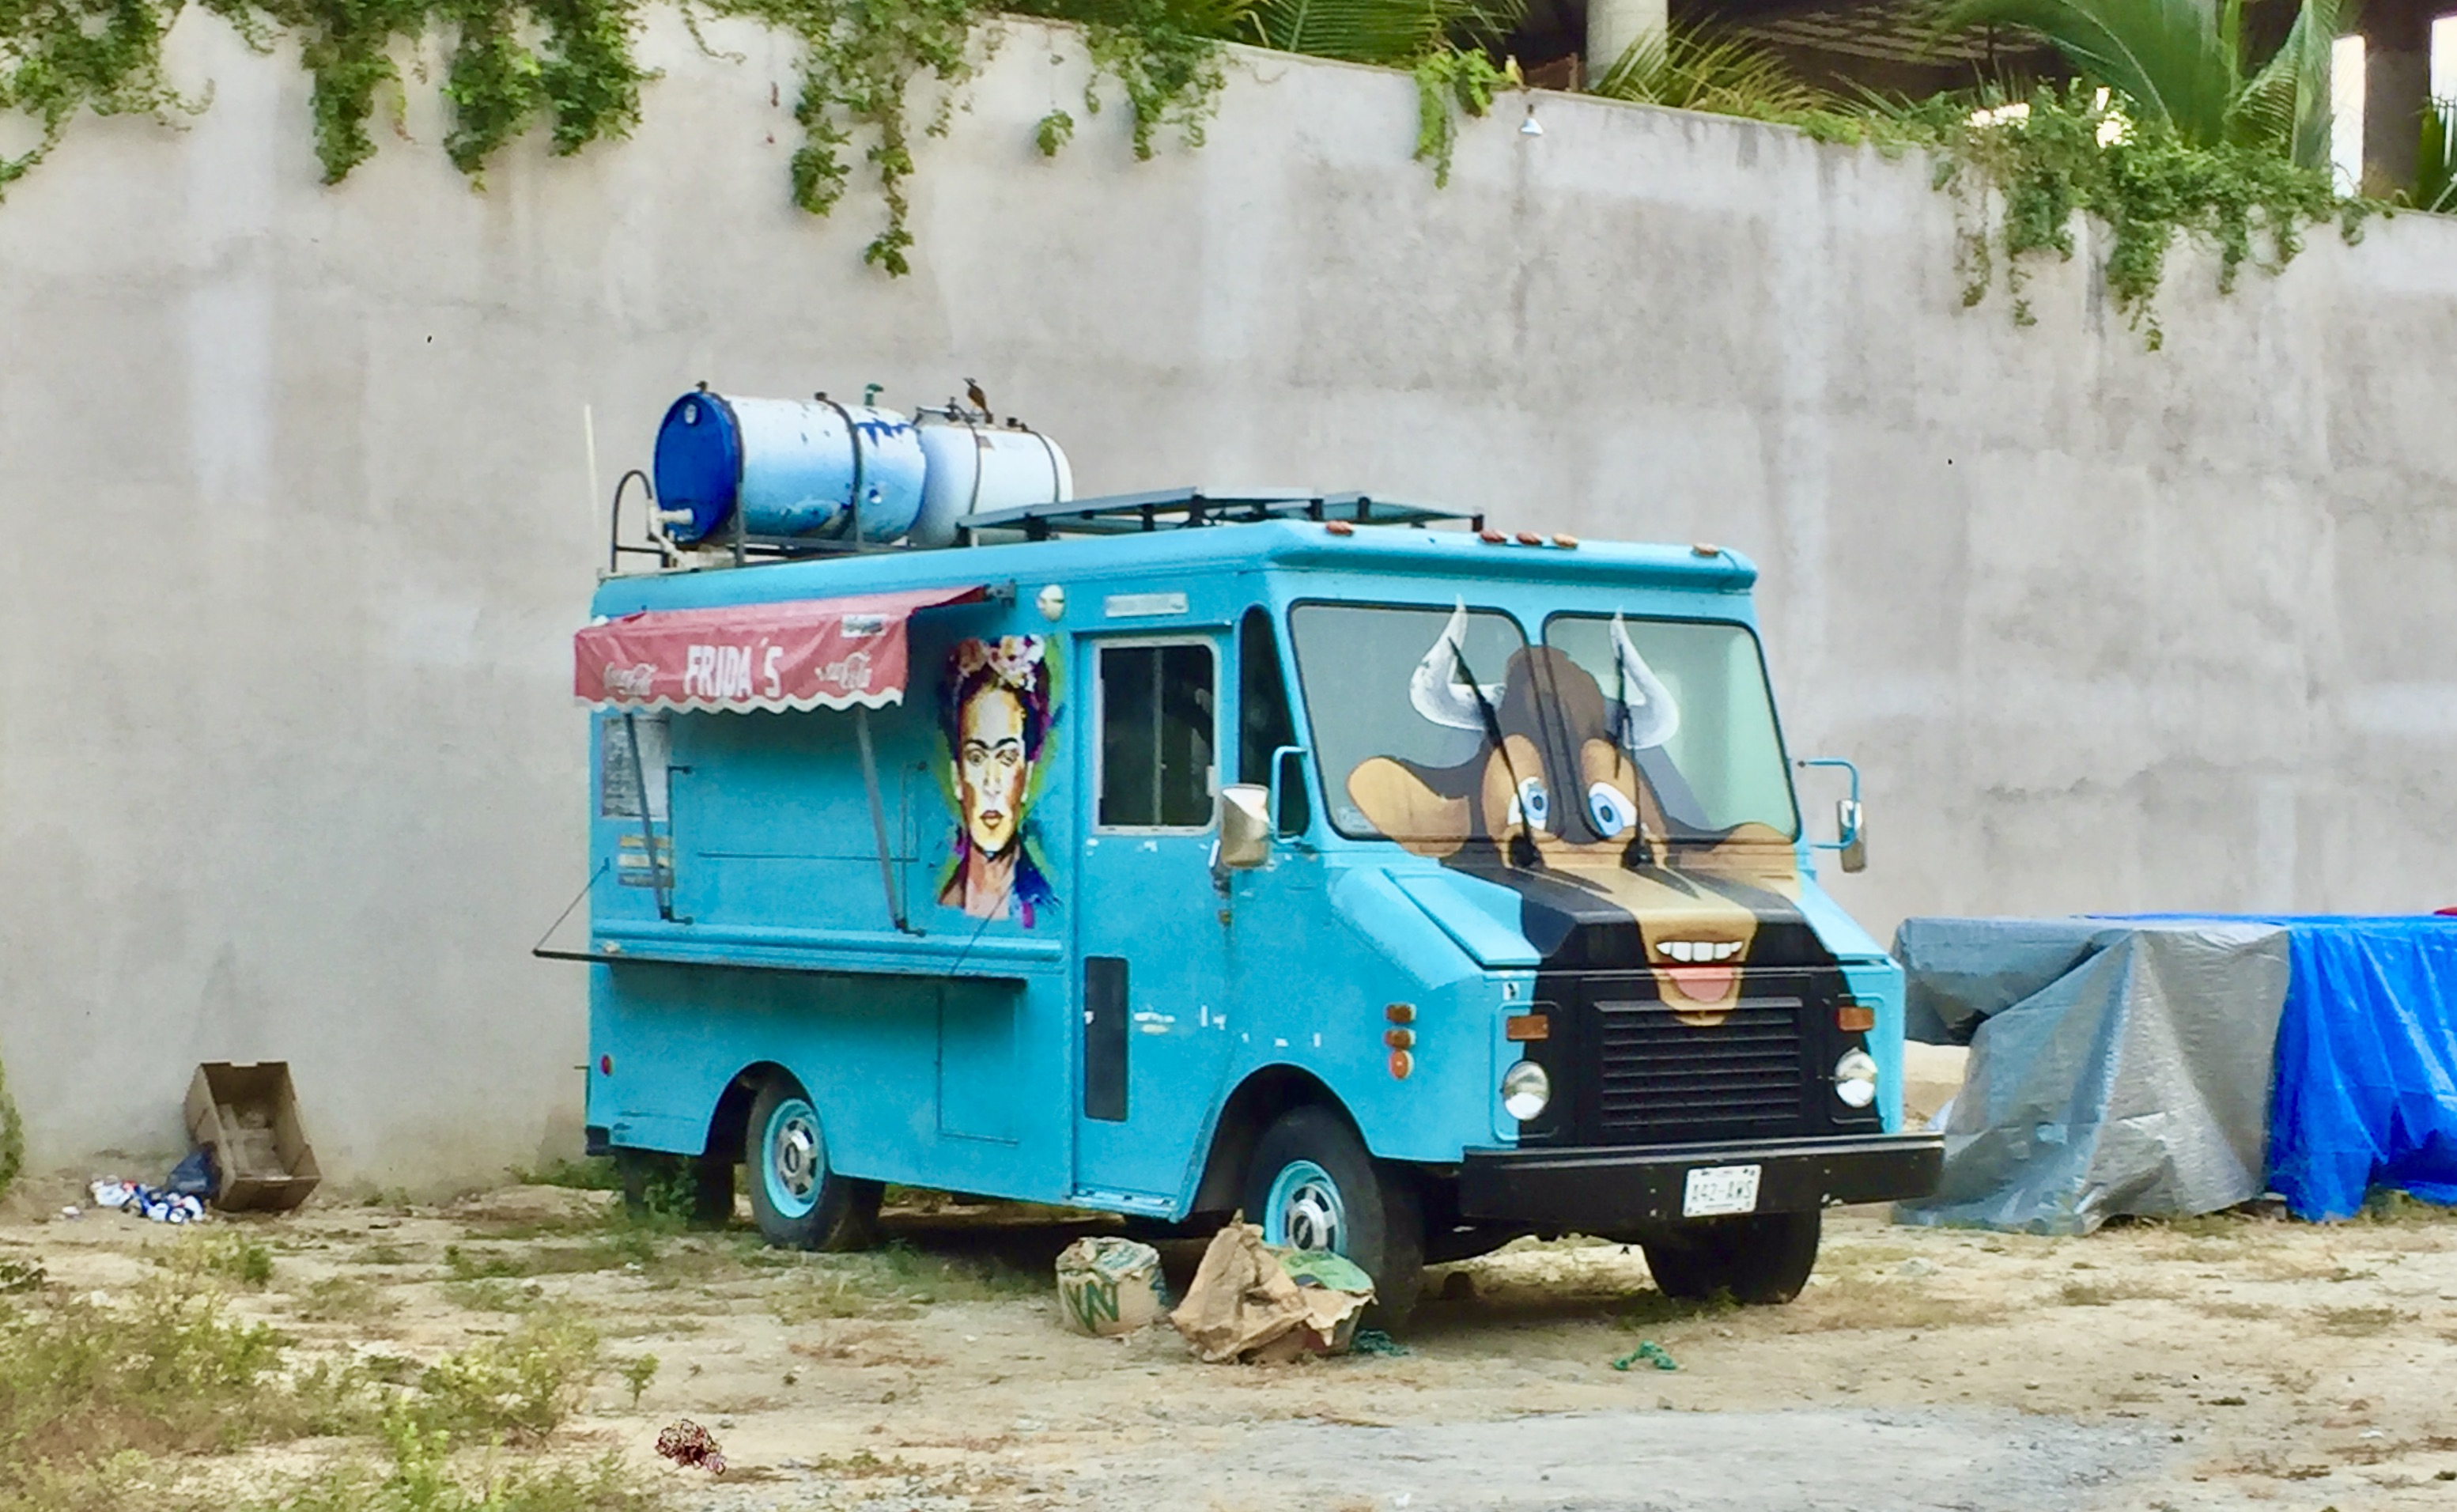 Chahué Beach, Chahué Bay, Huatulco, Mexico - Ferdinand the bull & Frida Kahlo painted on an abandoned food truck